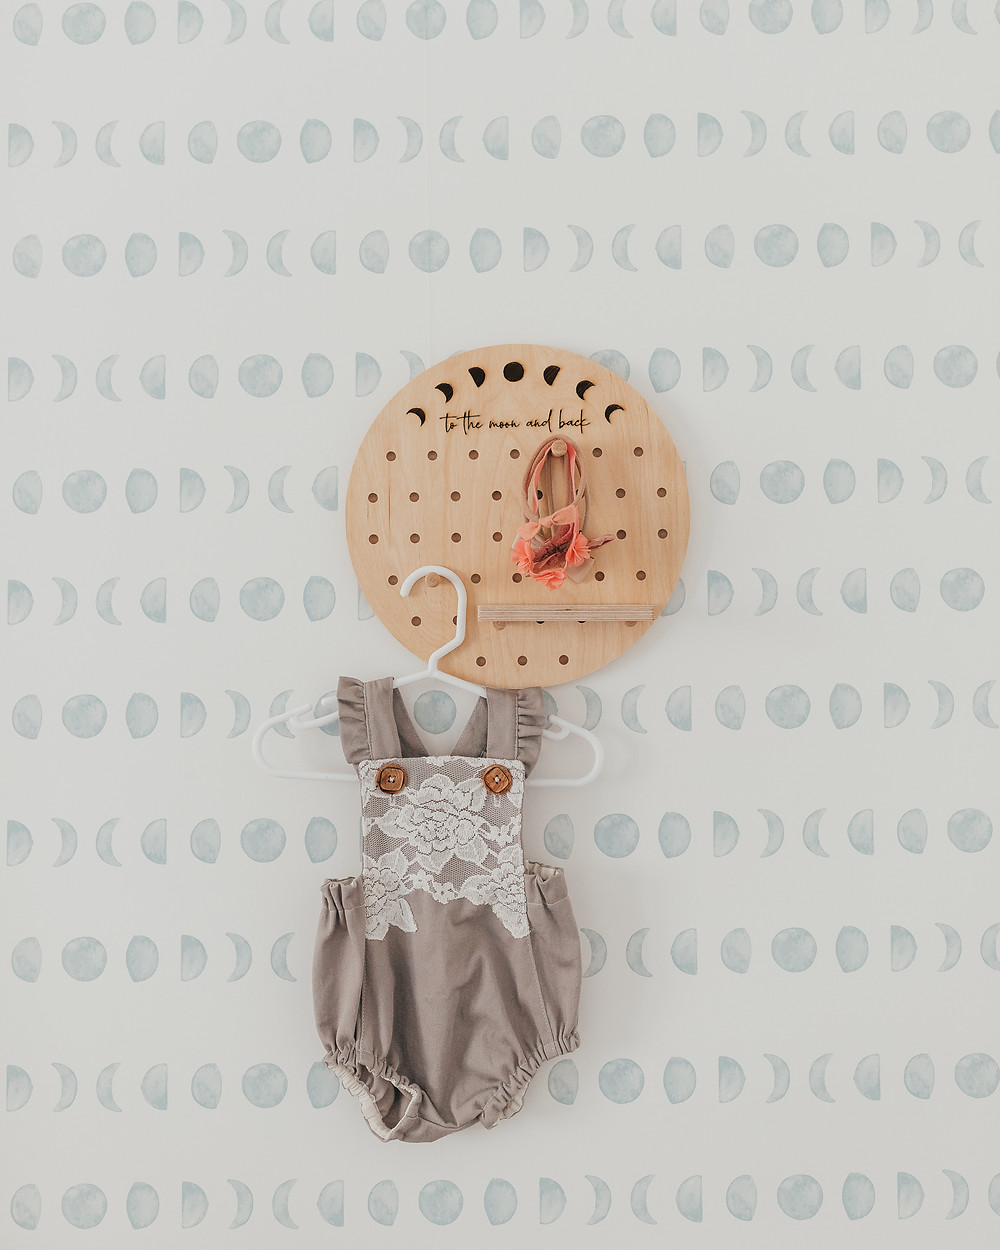 A baby romper hanging from a wooden peg board in a nursery.